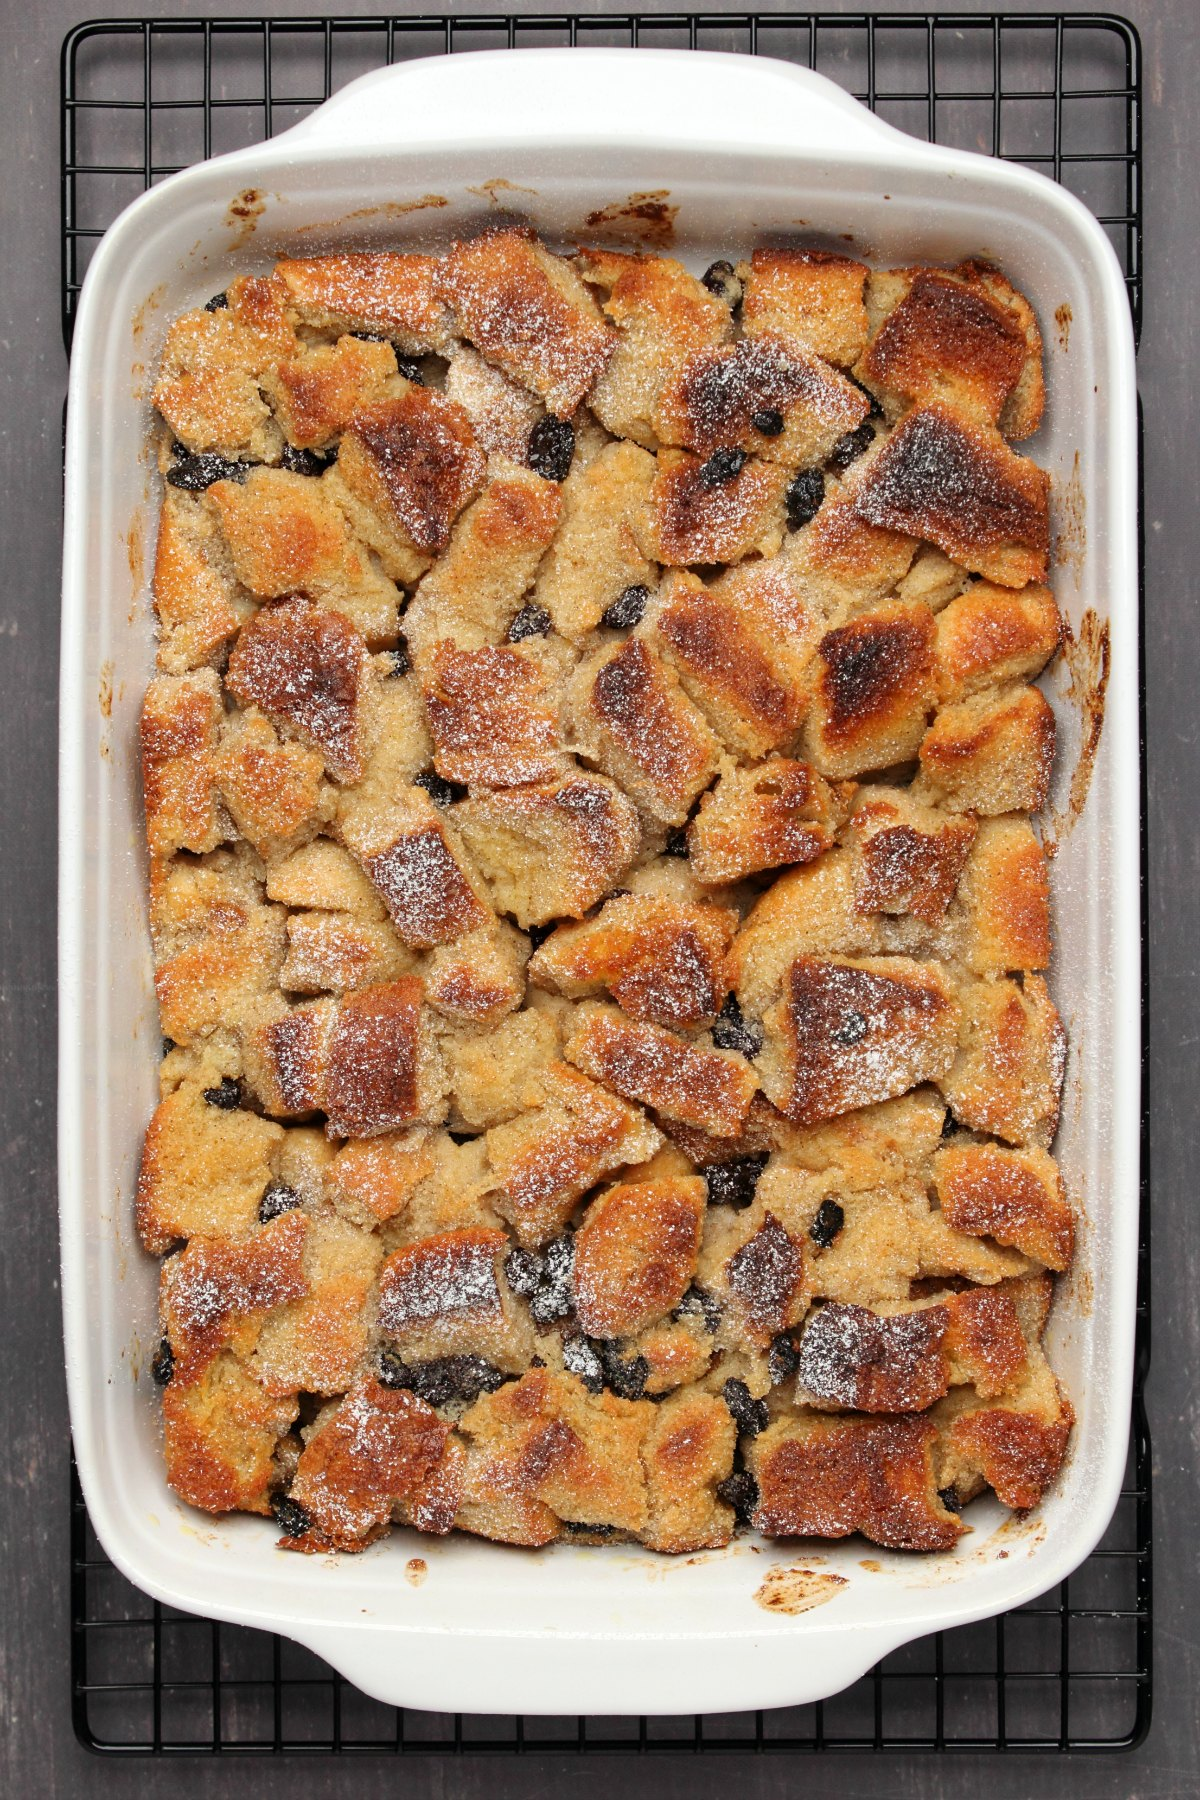 Freshly baked bread pudding topped with powdered sugar, in a white dish.